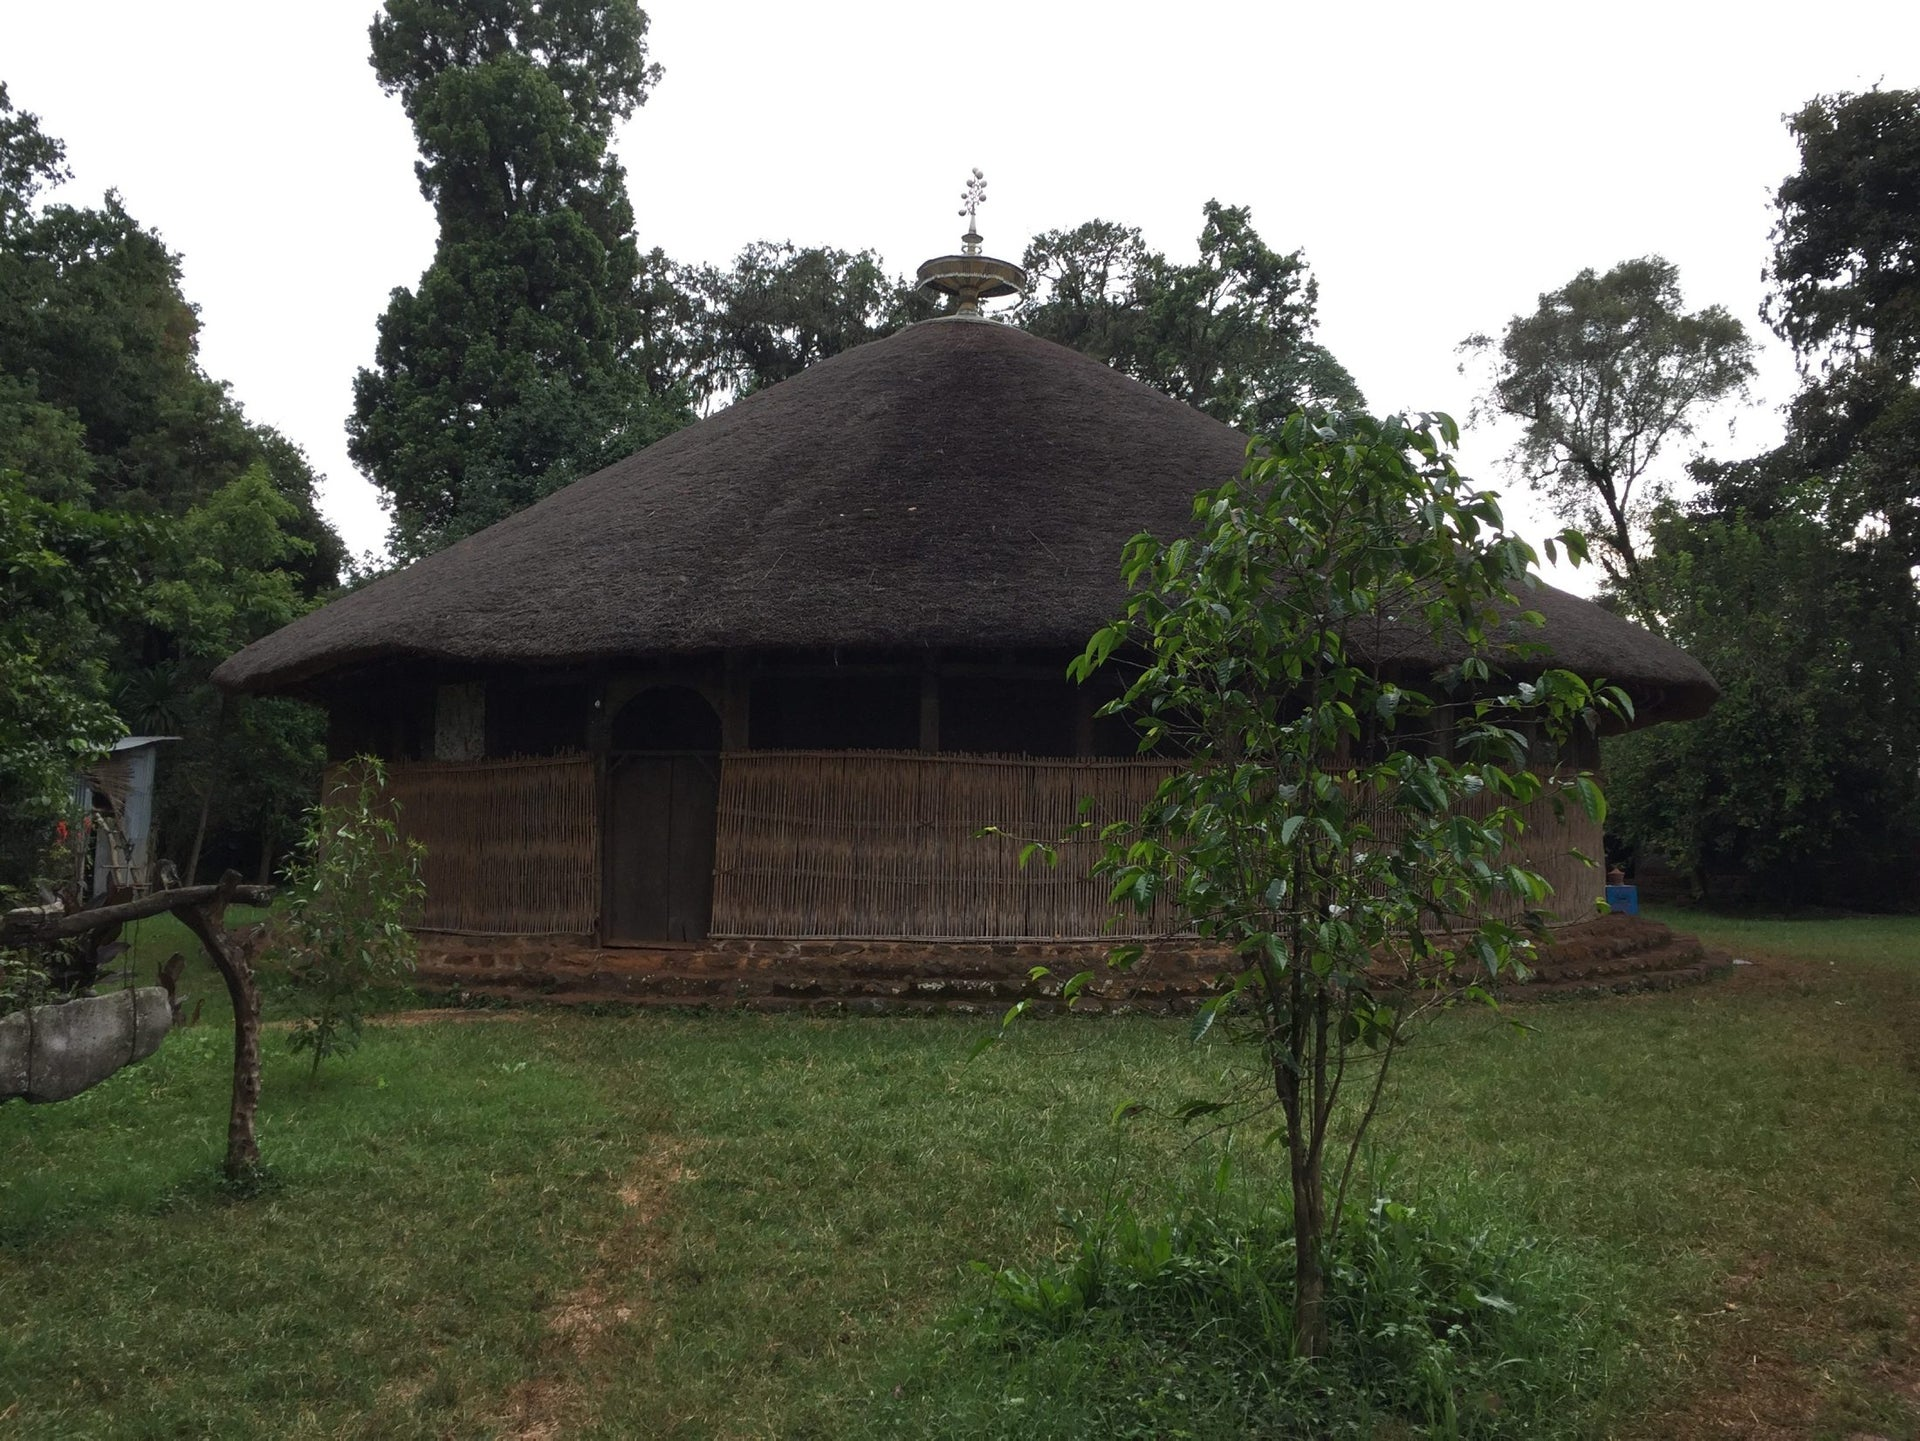 This Oct. 6, 2017 photo shows a church located Lake Tana, Ethiopia. On some of the islets in Lake Tana, the third largest lake in Africa, are monasteries, convents and churches, attesting to Ethiopia's ancient and deeply rooted Christian faith. Contrasting with the simple exterior of this round, thatch-roofed church is an interior filled with exuberantly colored religious paintings. The suspended rock on the left emits a rich gong sound when struck, calling the faithful to prayer.